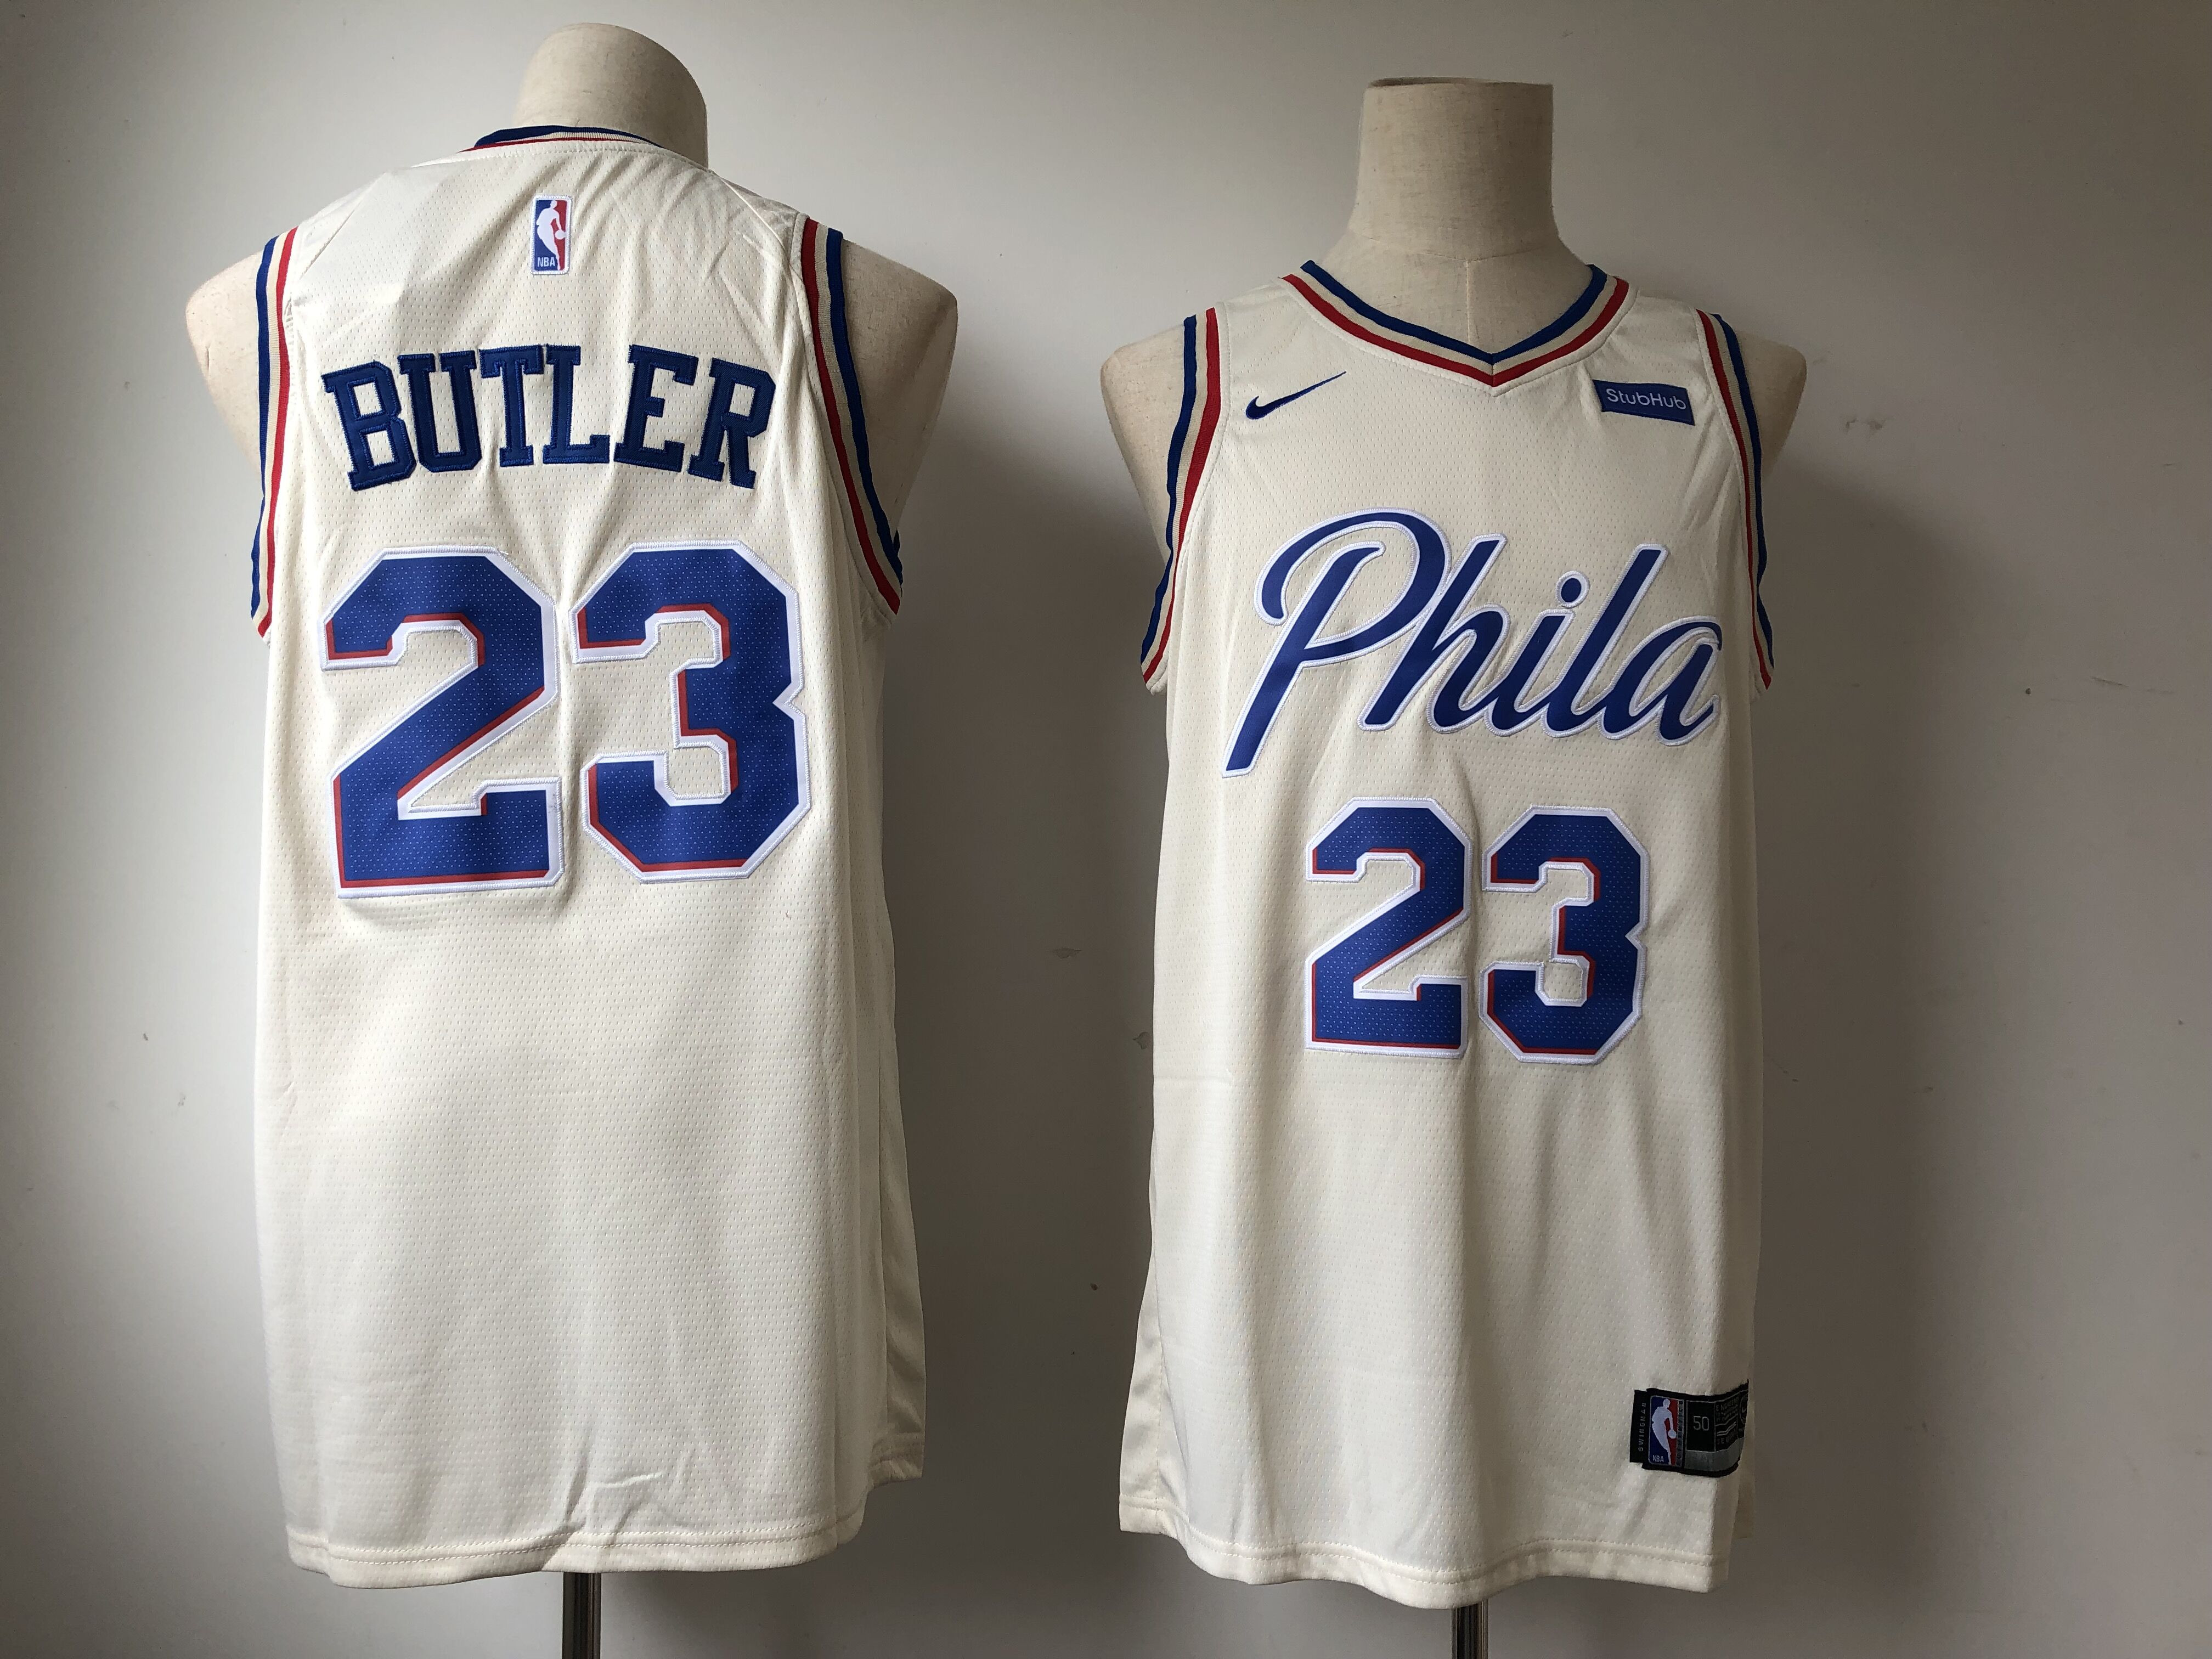 76ers 23 Jimmy Butler Cream City Edition Nike Swingman Jersey